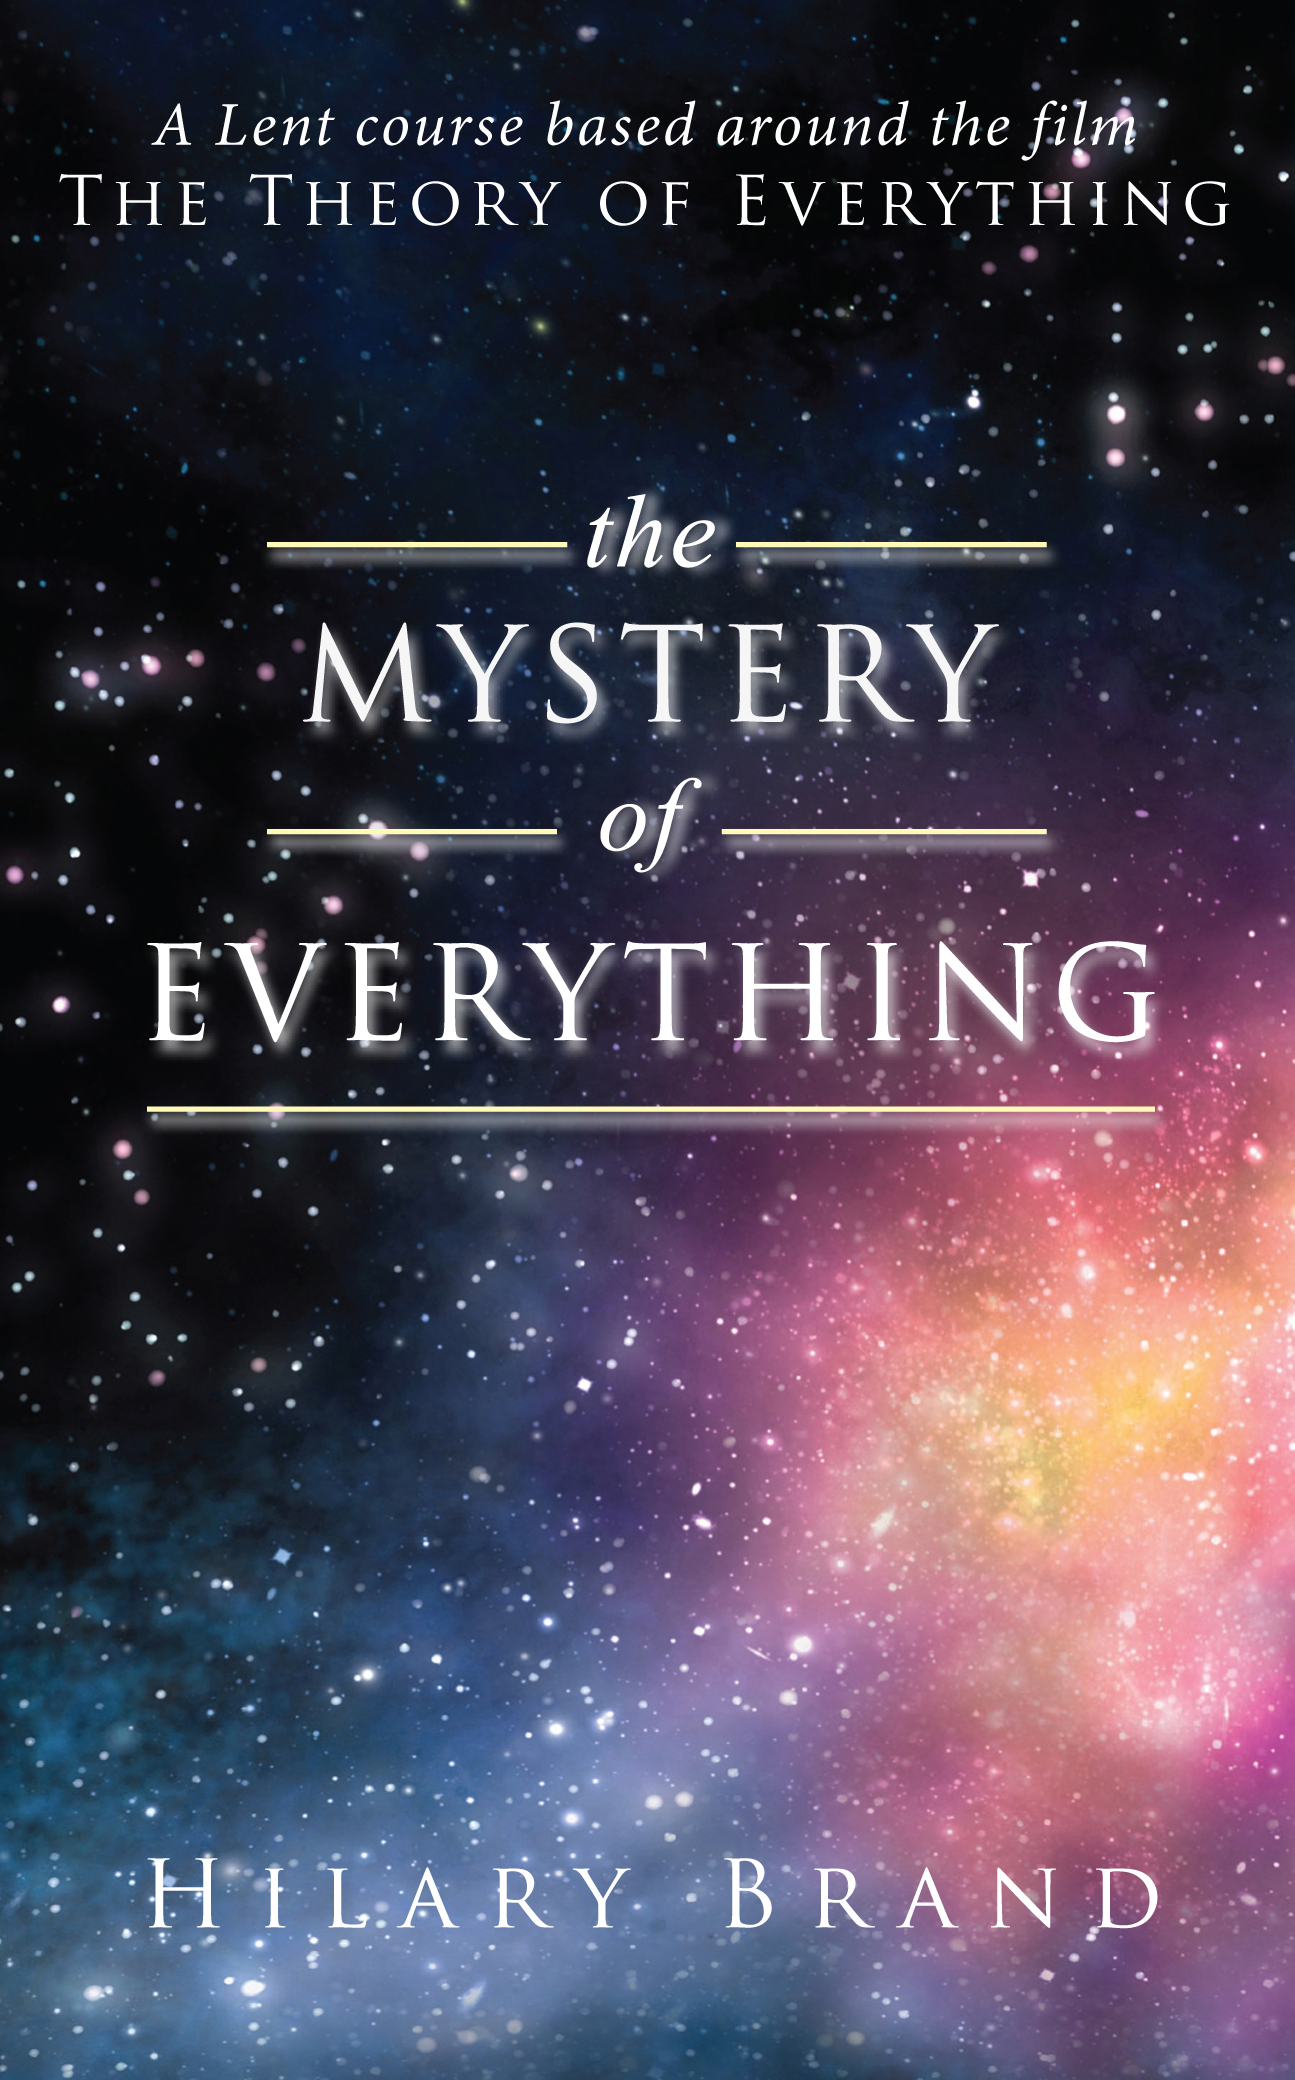 The Mystery of Everything: A Lent Course based around the film The Theory of Everything